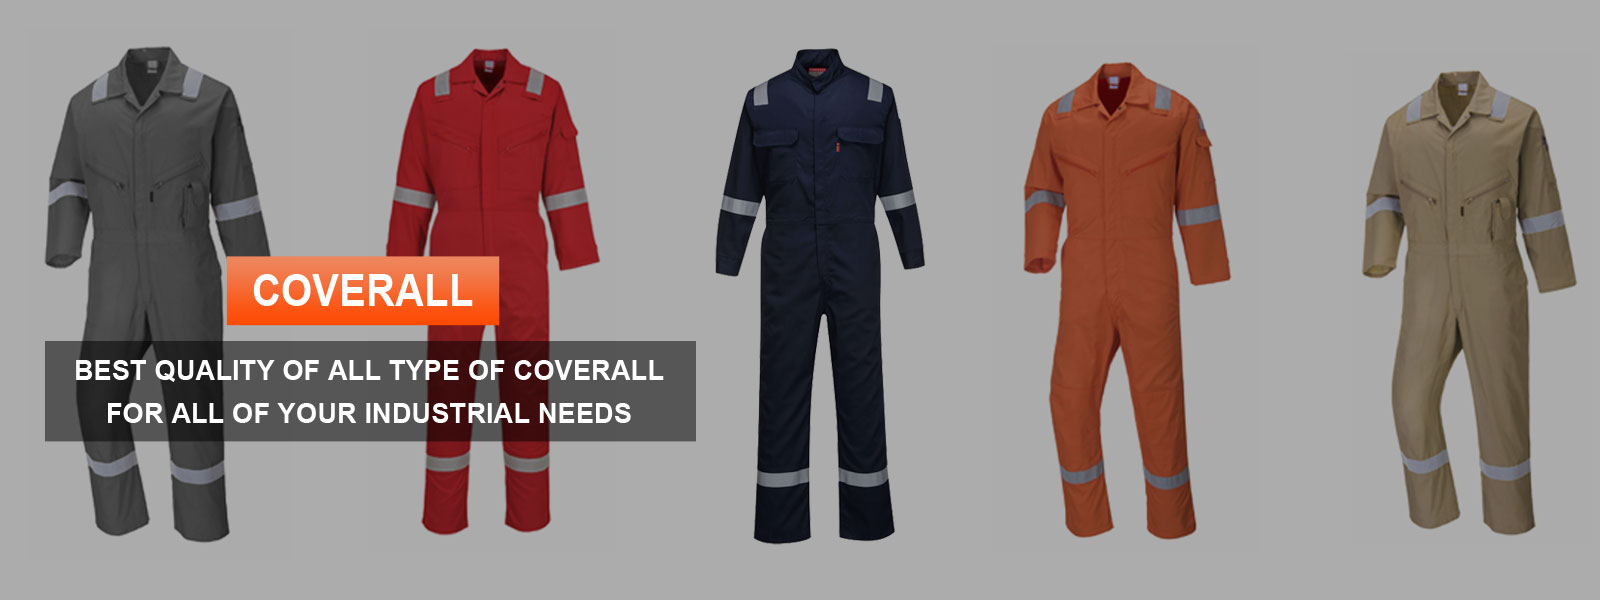 Coverall Manufacturers in Cyprus